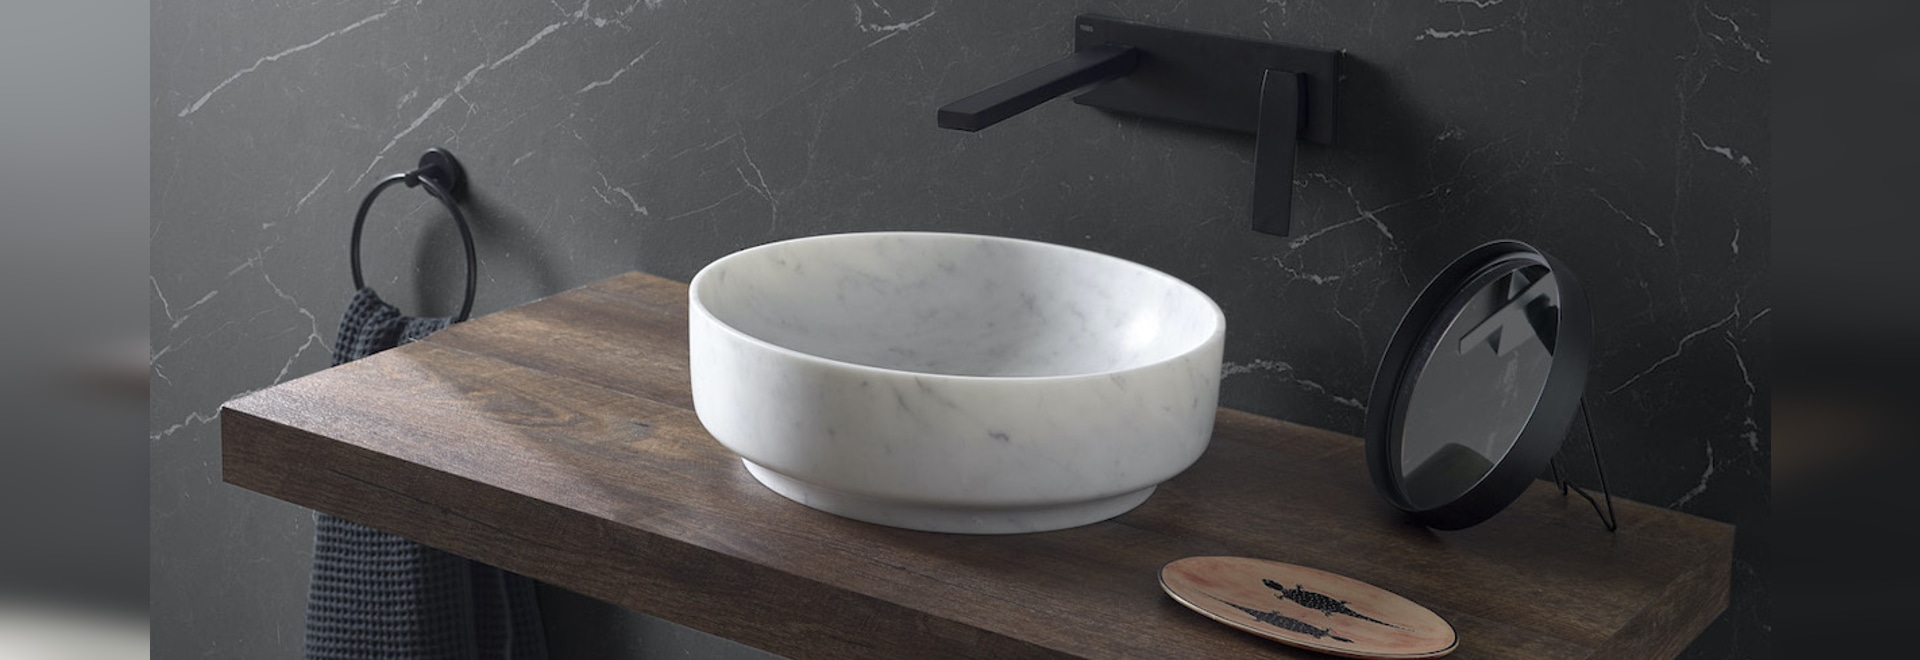 Carrara Marble Counter Top Washbasin